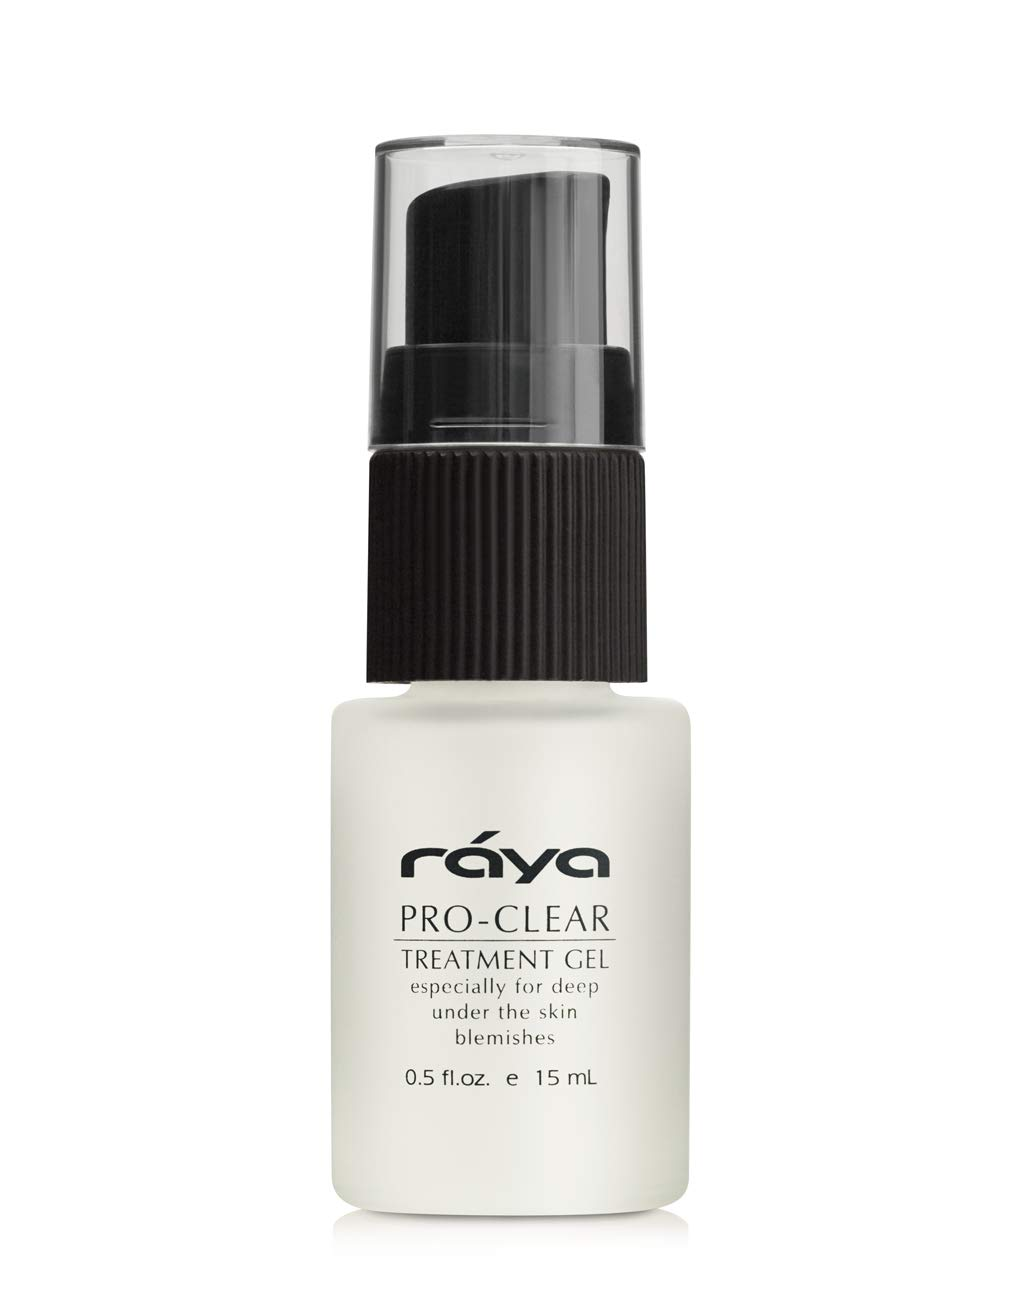 RAYA Pro-Clear Treatment Gel (715) | Facial Spot Treatment for Under the Skin Blemishes | Helps Heal Break-Outs and Reduce Scarring